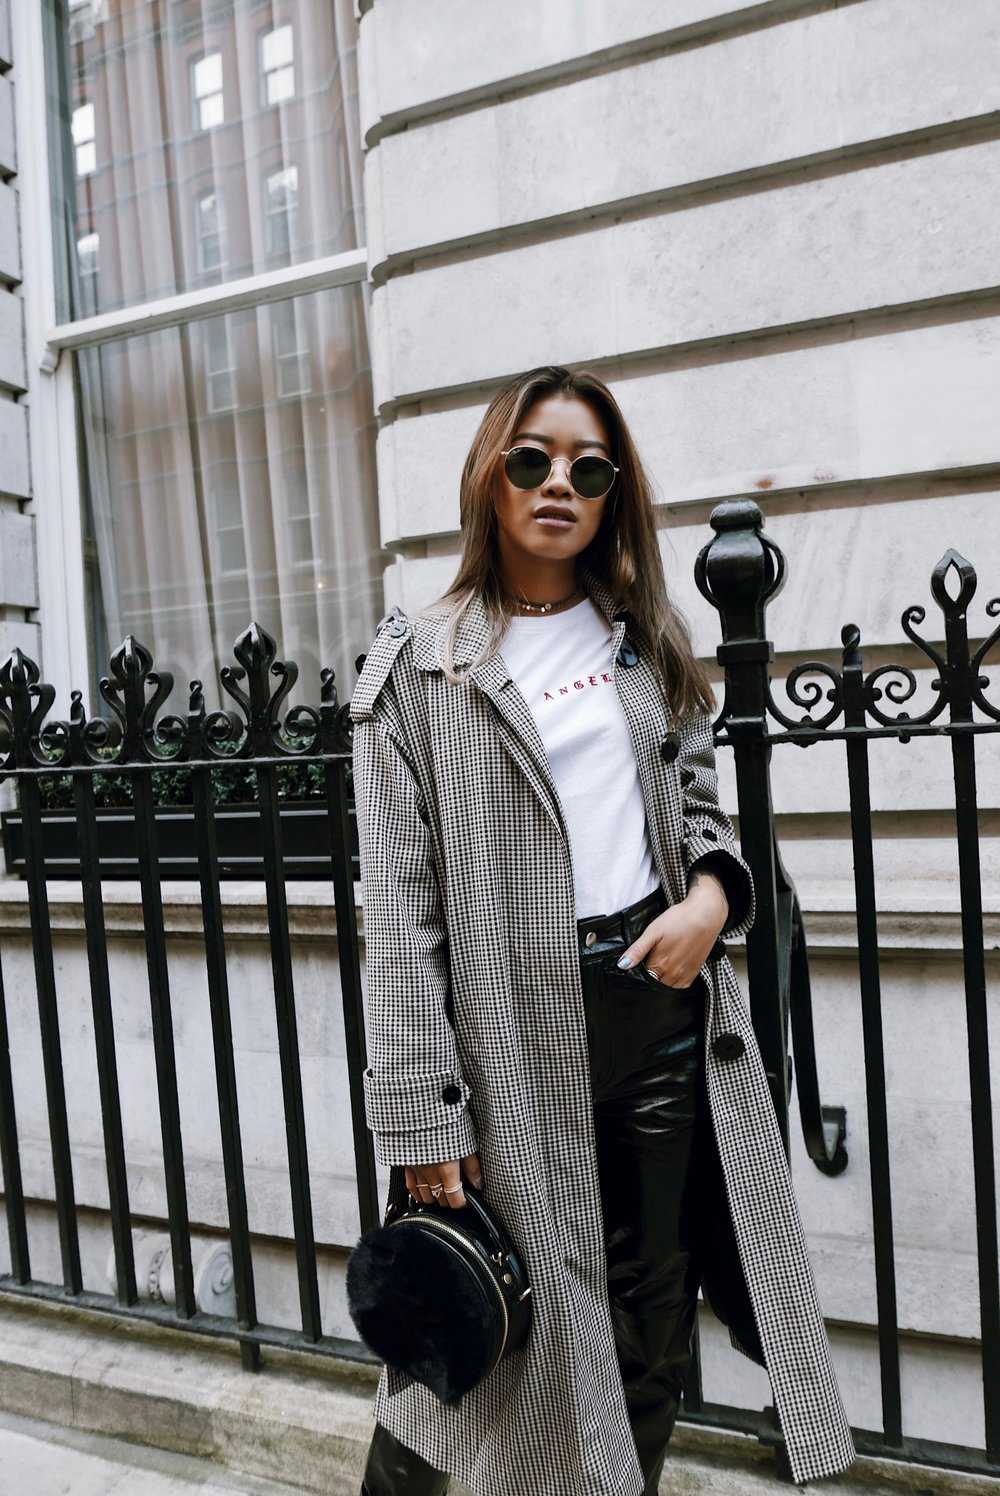 THE OUTFIT TO MATCH THE ATTITUDE - MANGO COAT | BRANDY MELVILLE T SHIRT | ACCESSORIZE BAG | ACCESSORIZE CHOKER | RAY BAN SUNGLASSES | LPA LEATHER TROUSERS | PUMA X KOOPLES TRAINERS